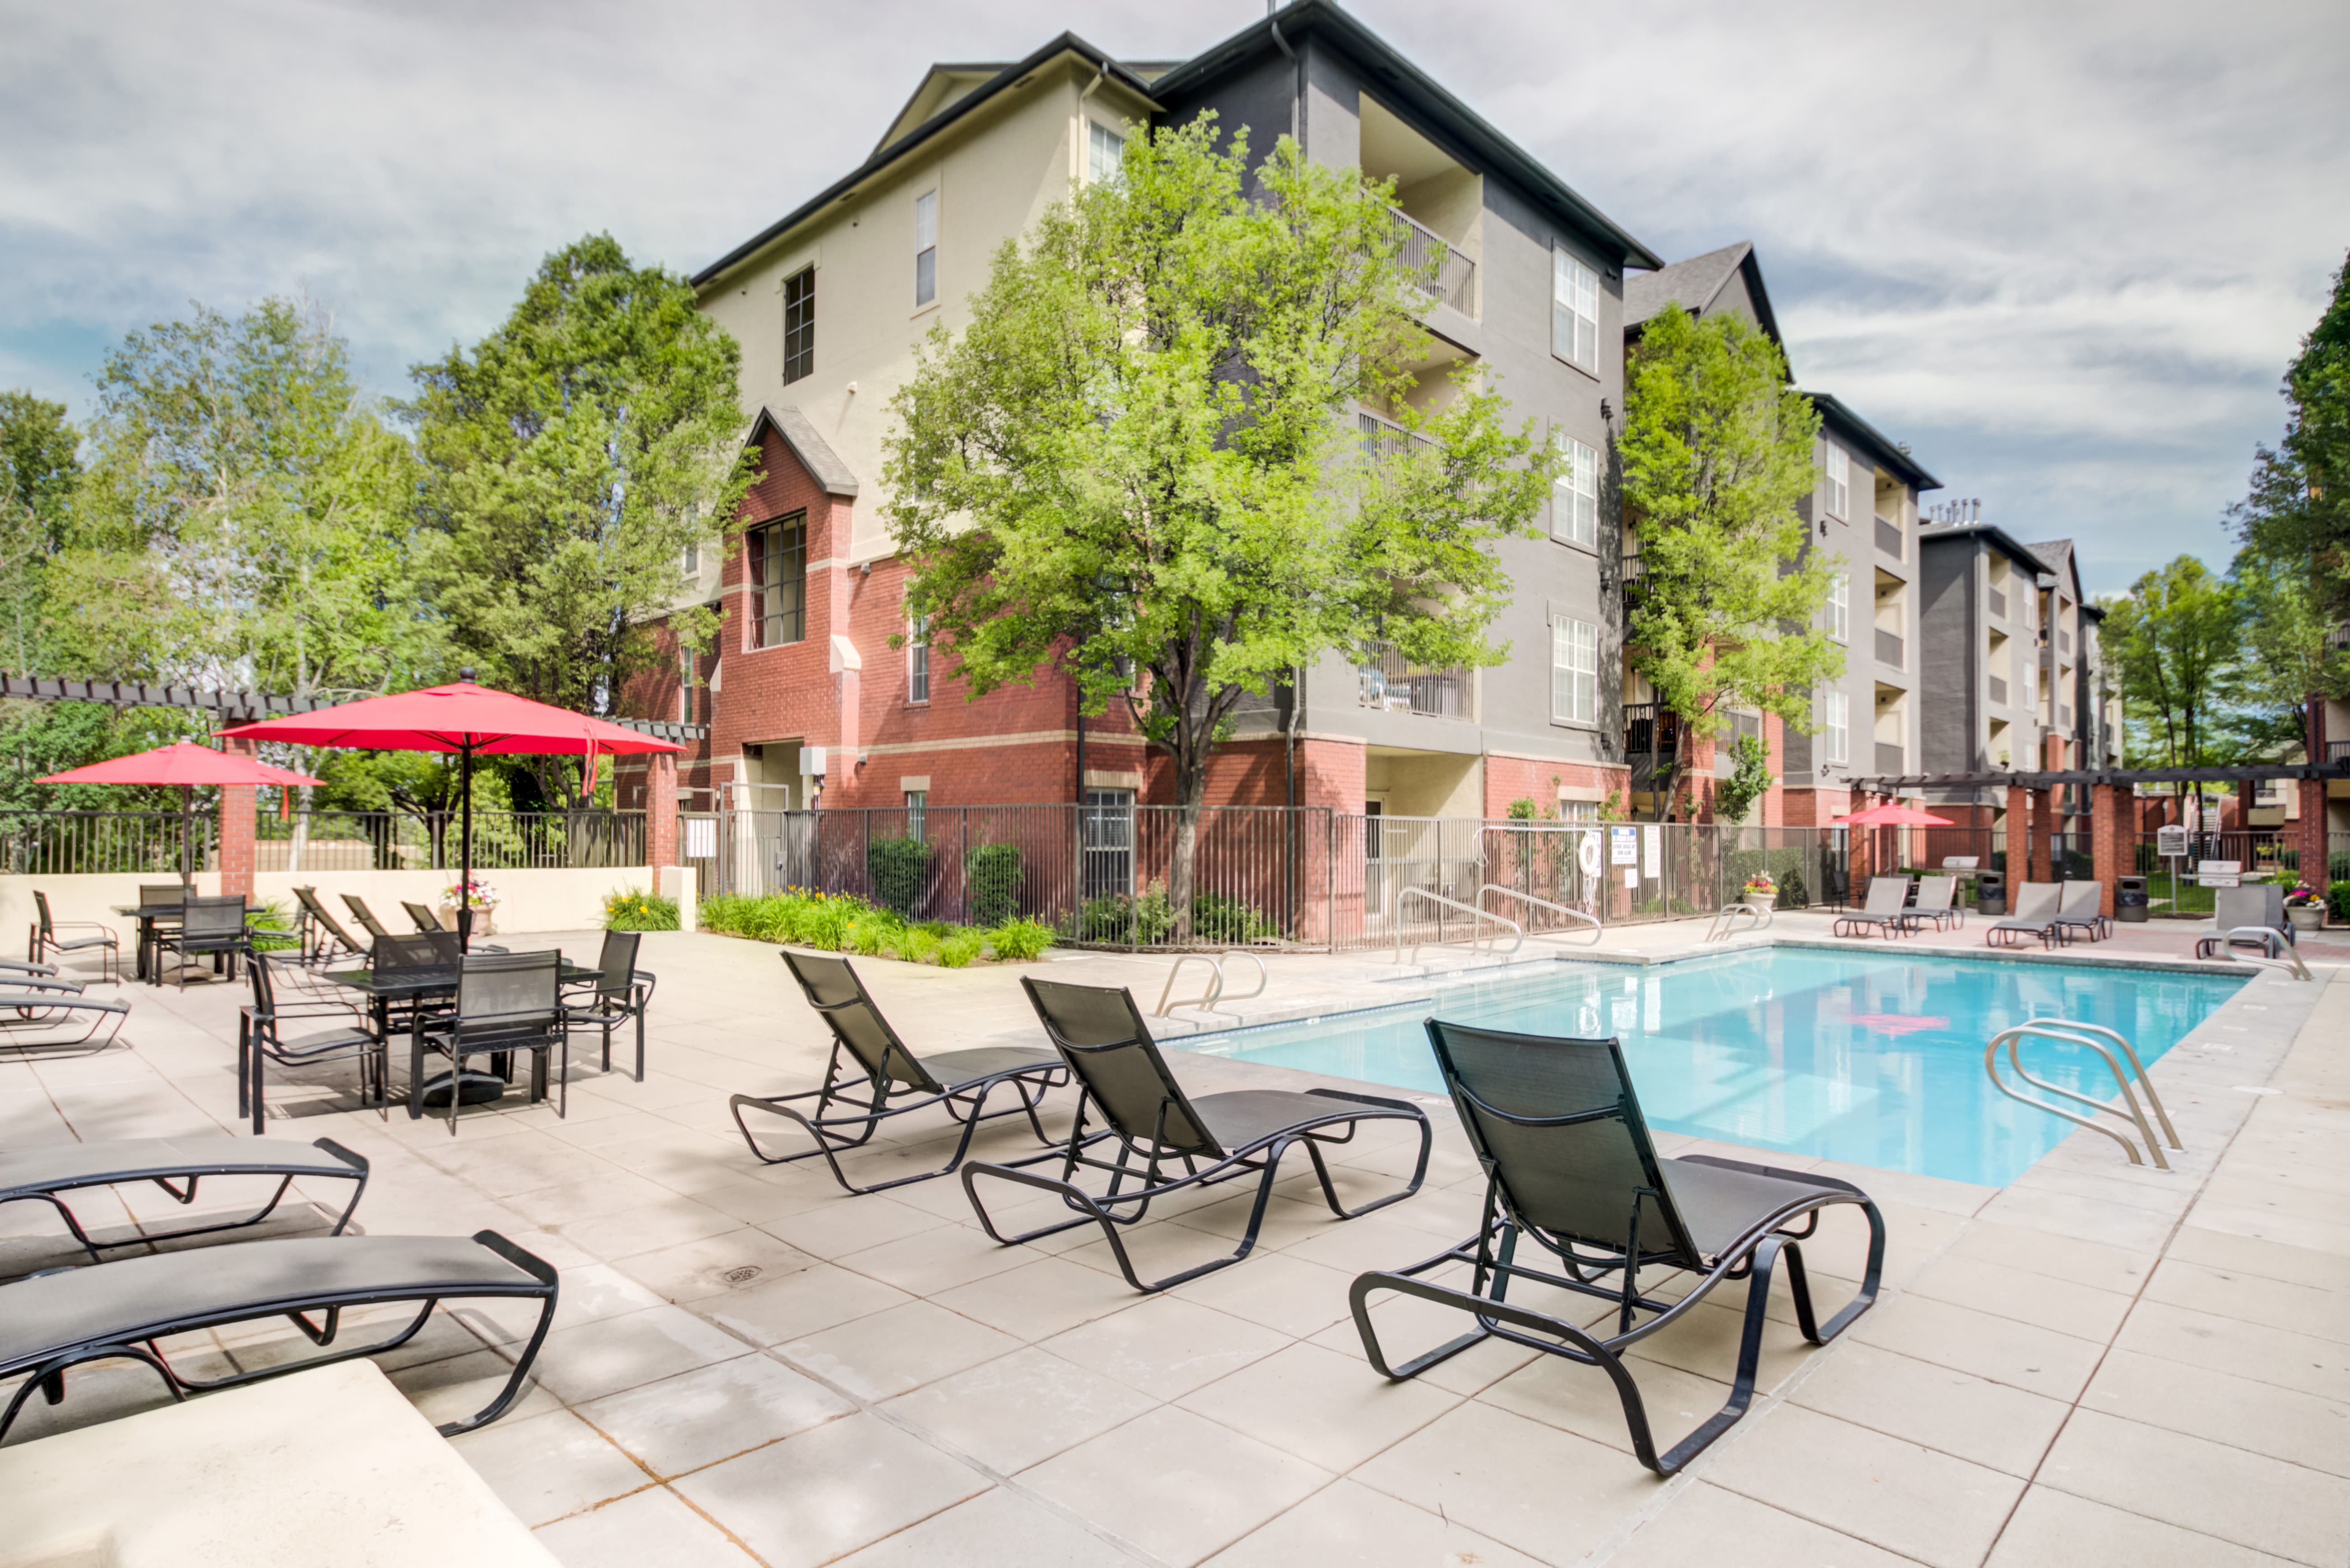 Sparkling swimming pool at Irving Schoolhouse Apartments in Salt Lake City, Utah